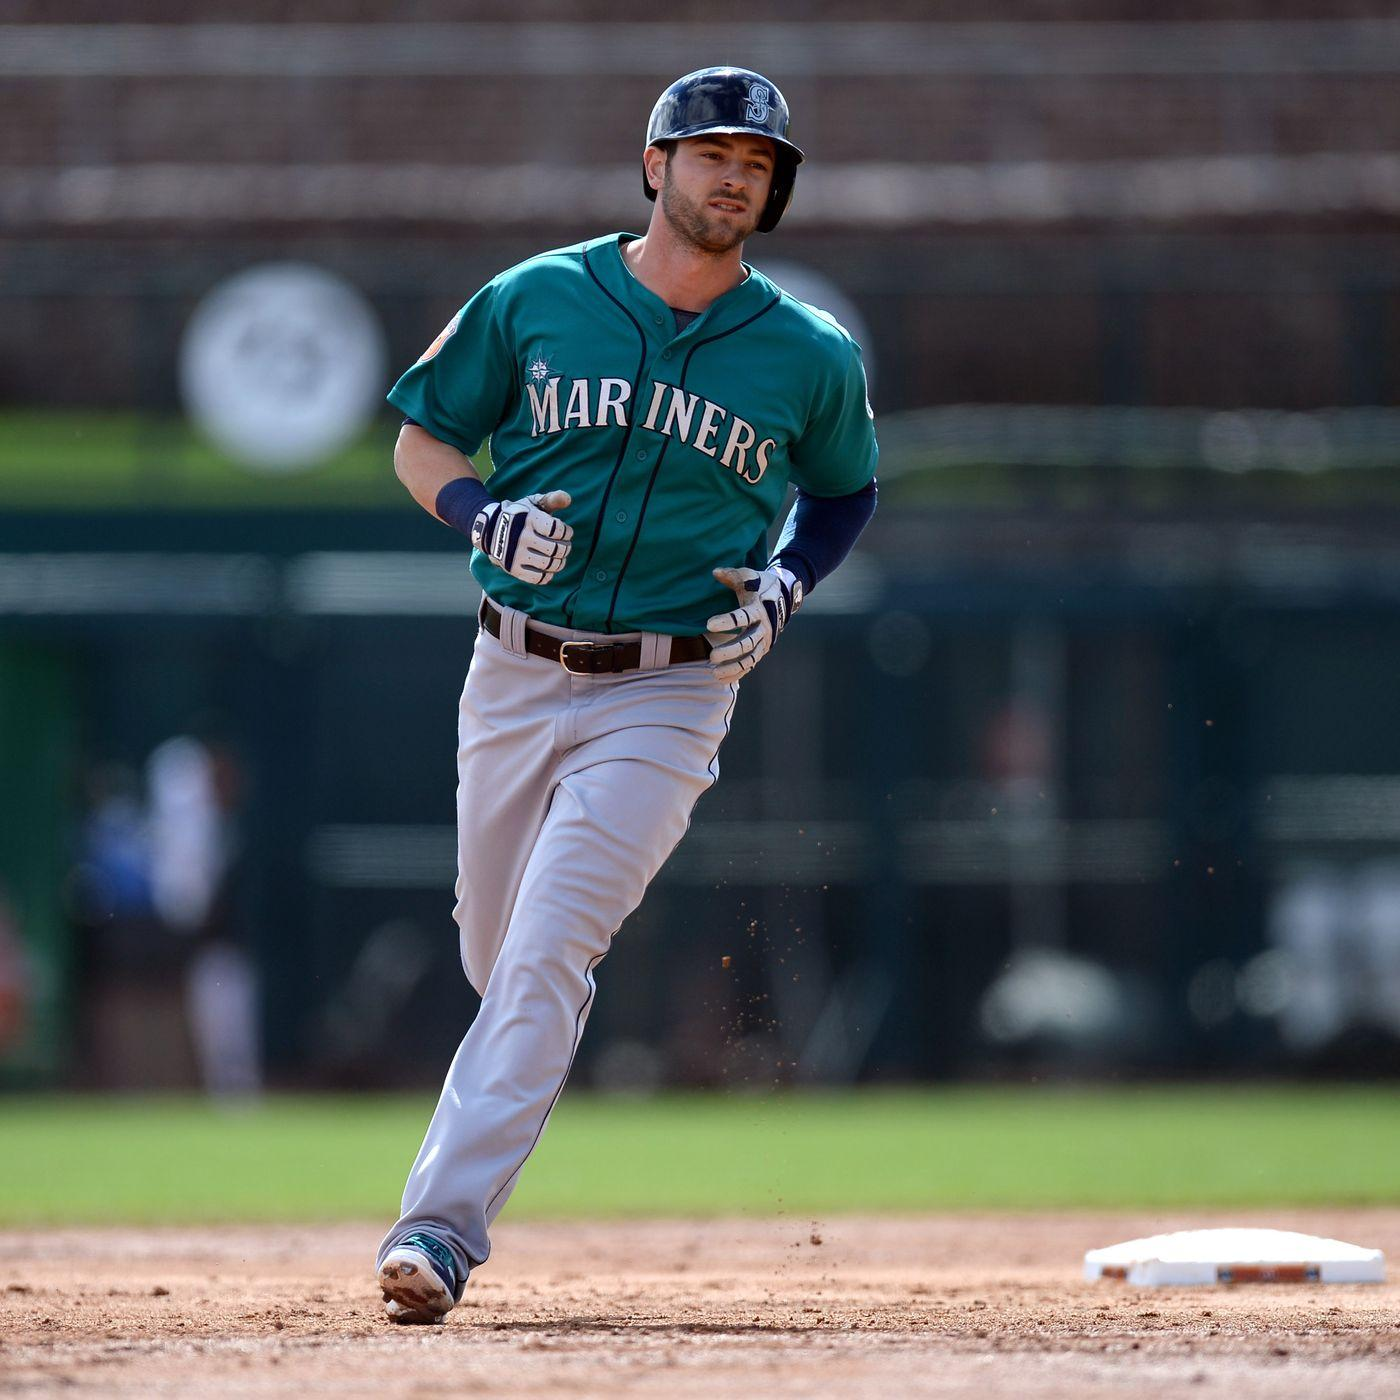 Mariners prospect Mitch Haniger: heading for a breakout?